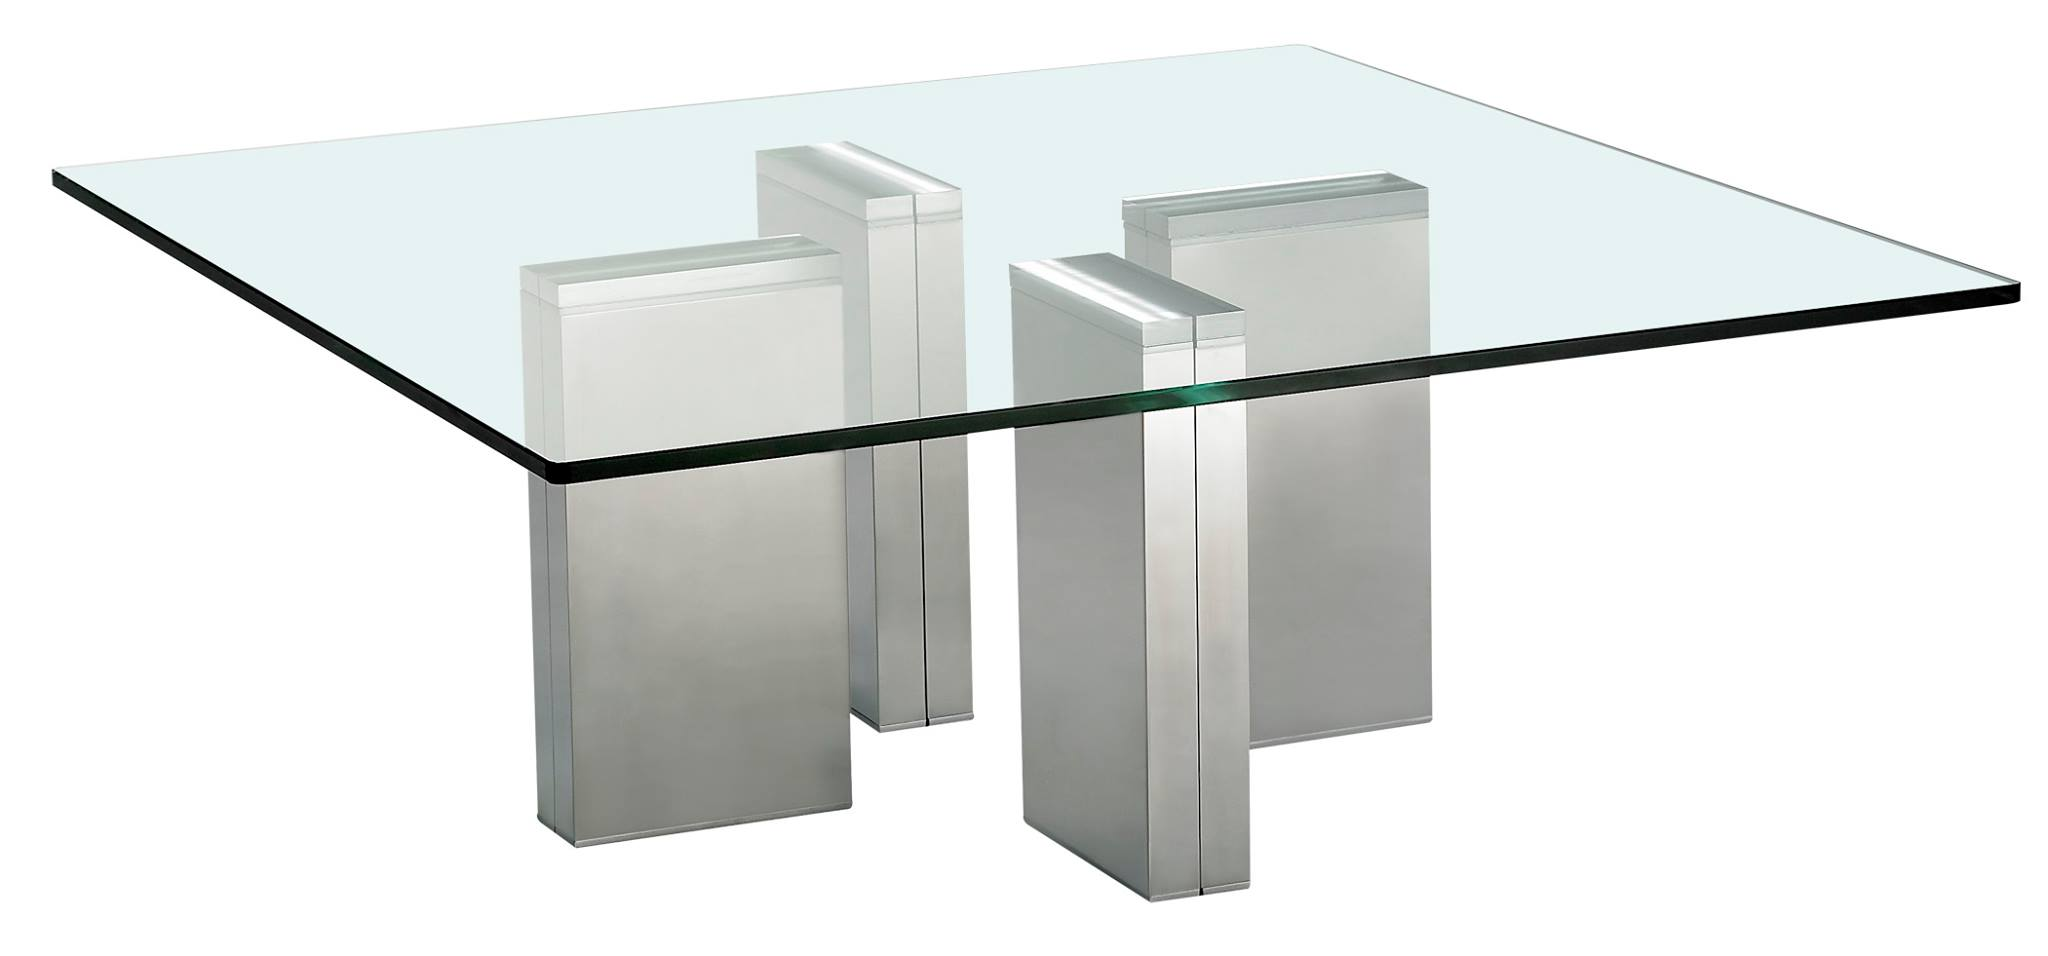 Table basse verre tremp et acier chrom brick eda concept for Table basse verre